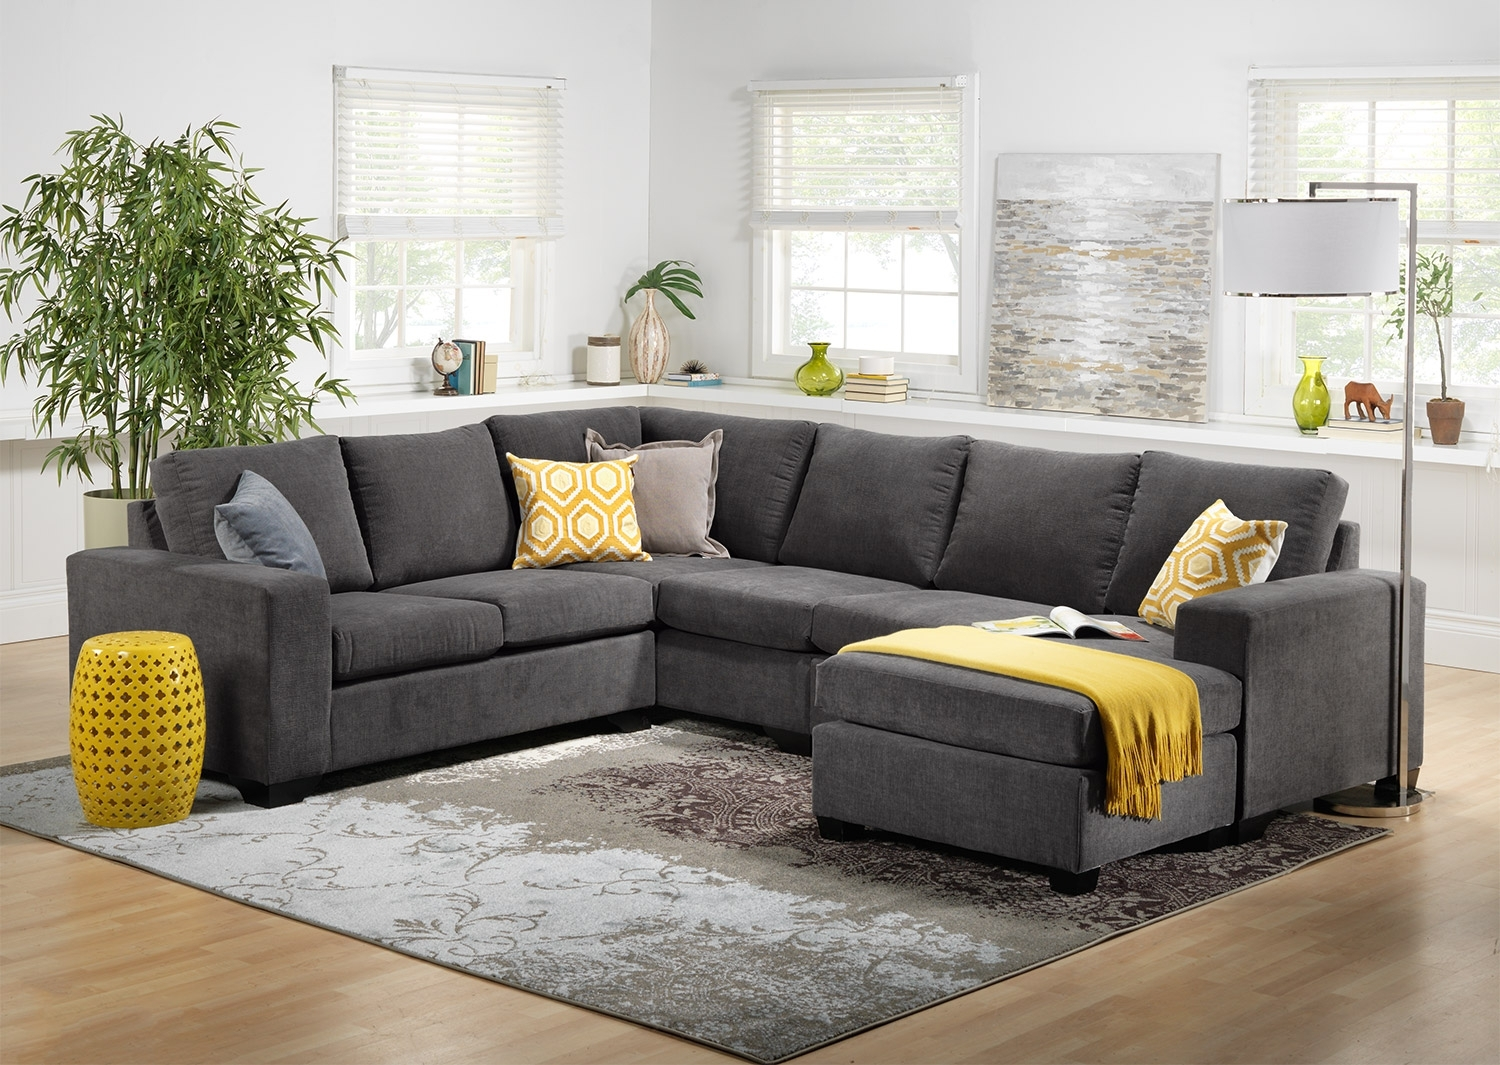 10 ideas of sectional sofas at edmonton sofa ideas Living room furniture for sale edmonton